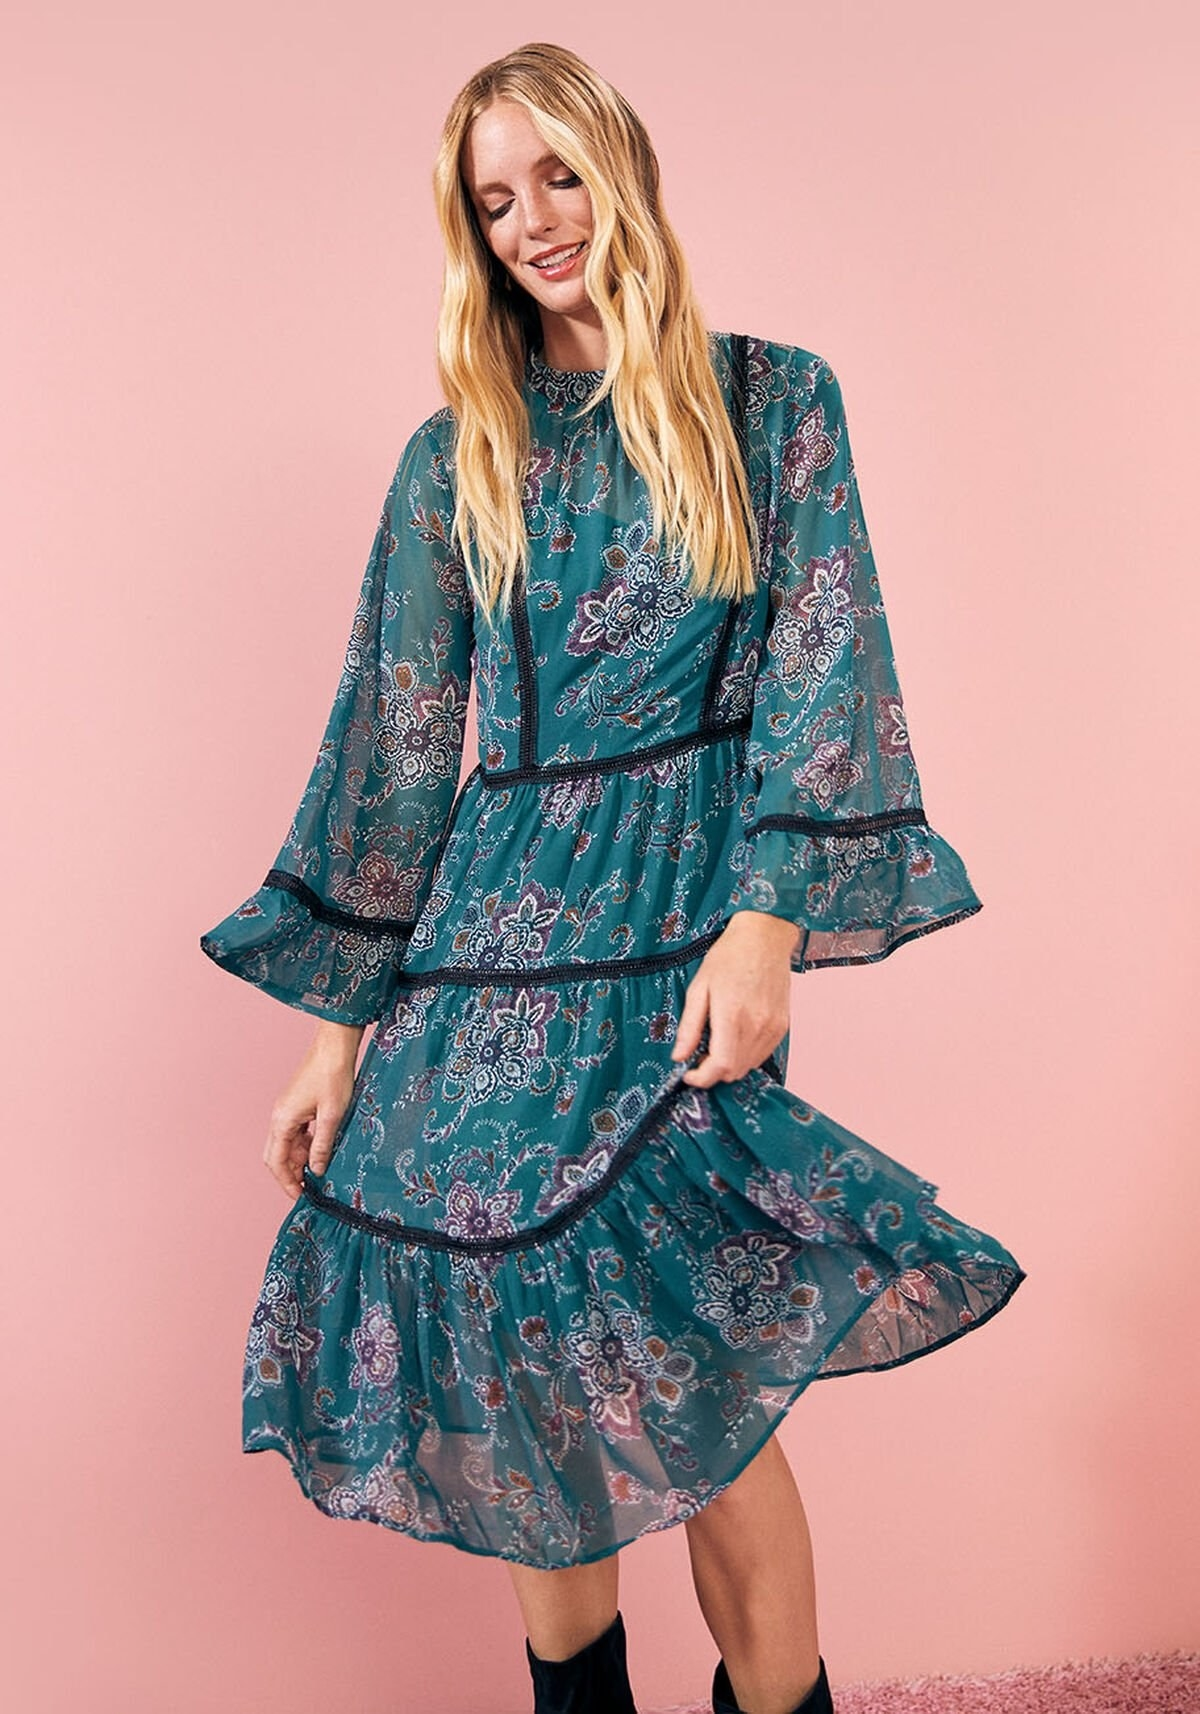 A model wears the loose midi dress with flowy bell sleeves and a tiered silhouette, made with green chiffon and a lace trim, that comes down to their knees